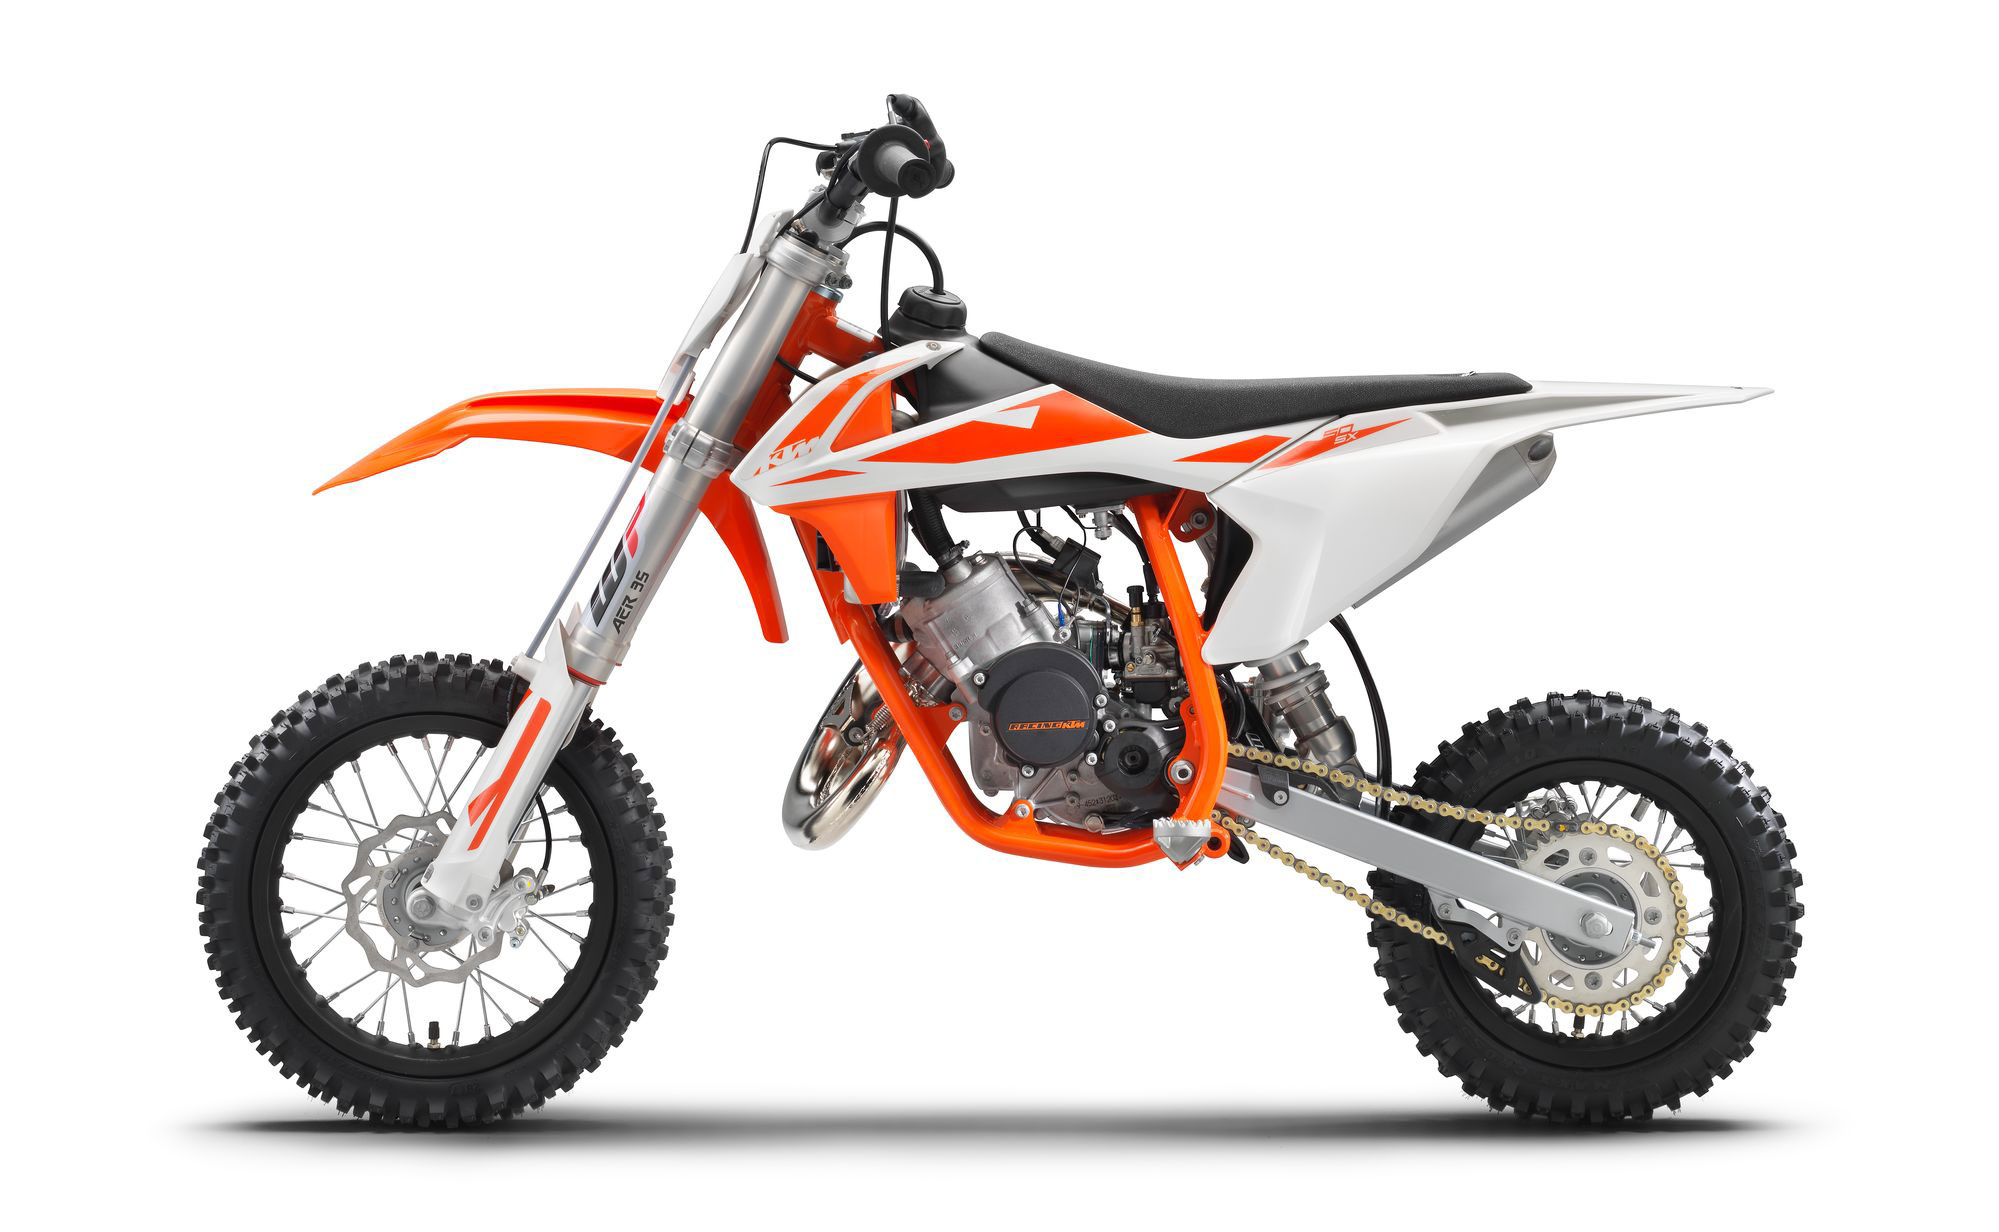 2019 KTM 50 SX Guide • Total Motorcycle